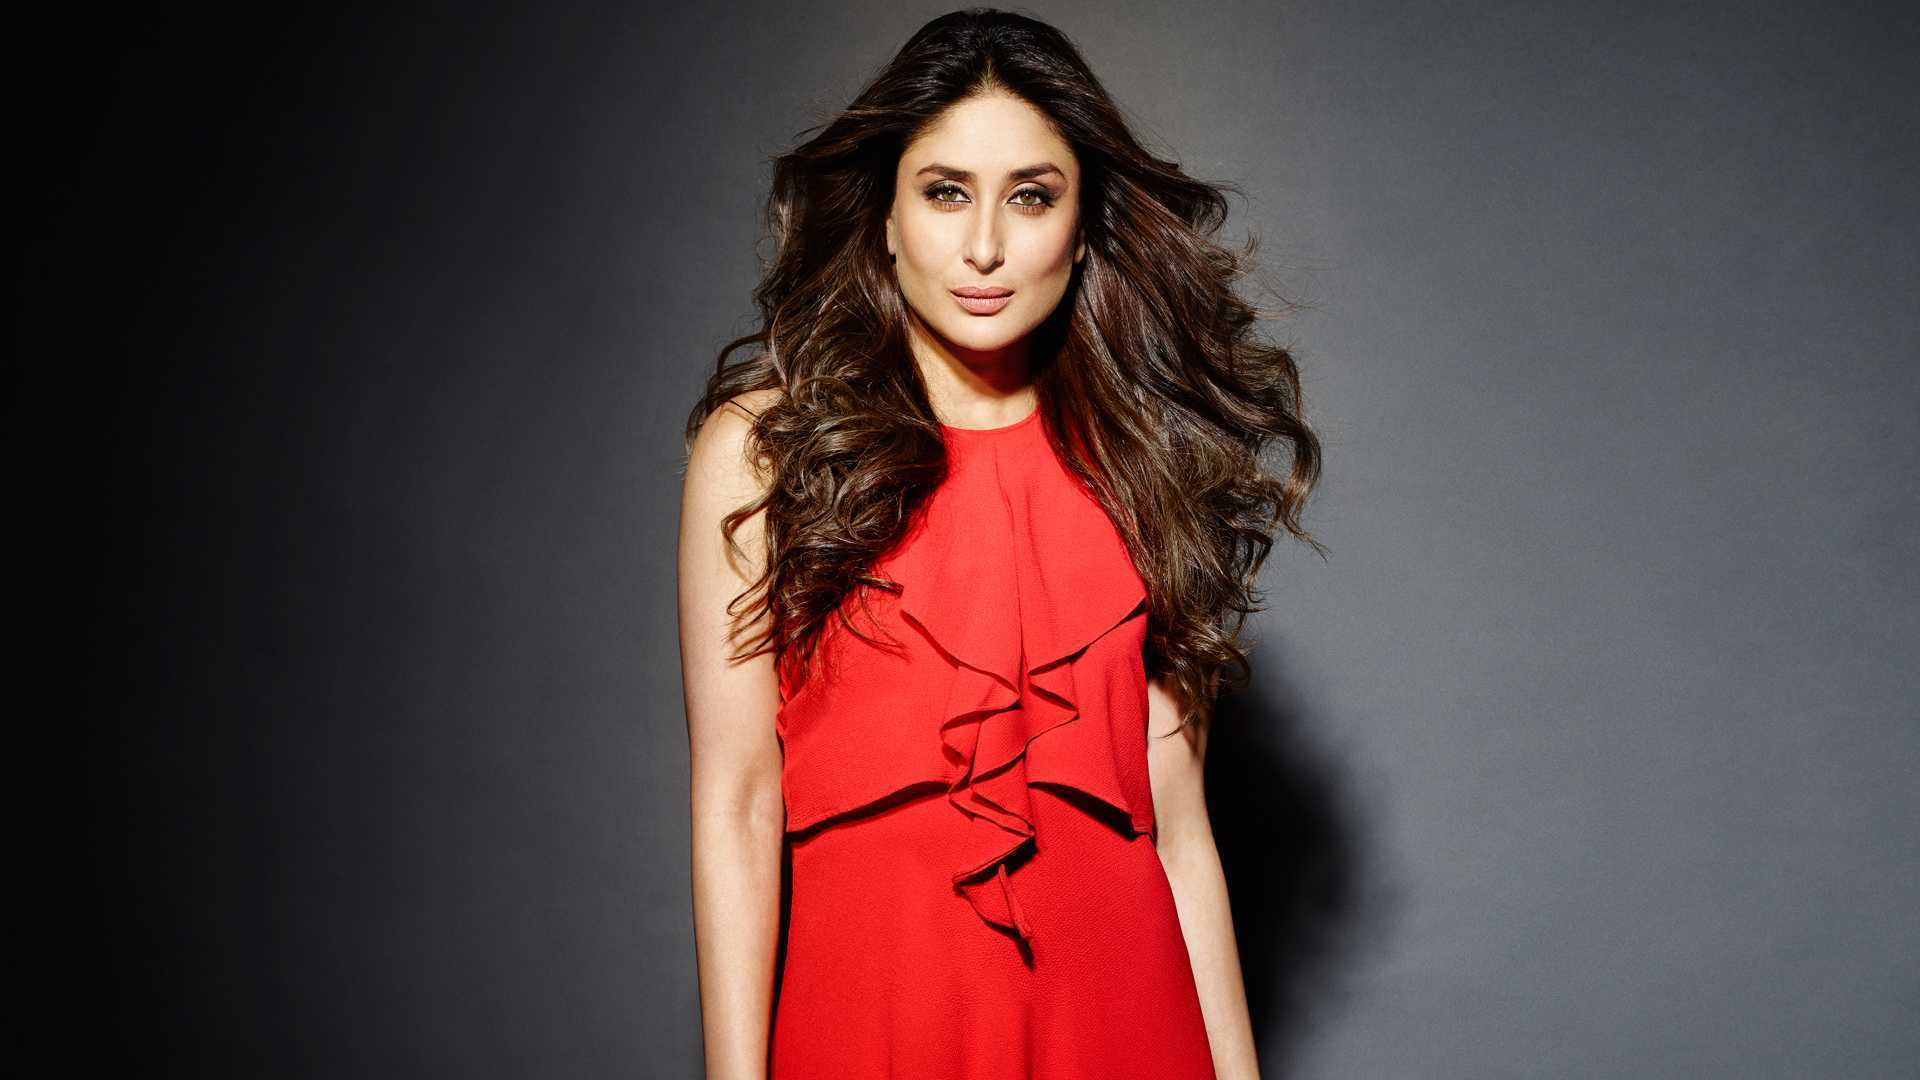 Simple Girl Wallpaper Pakistani Kareena Kapoor Khan Will Make You Fall In Love With Anita